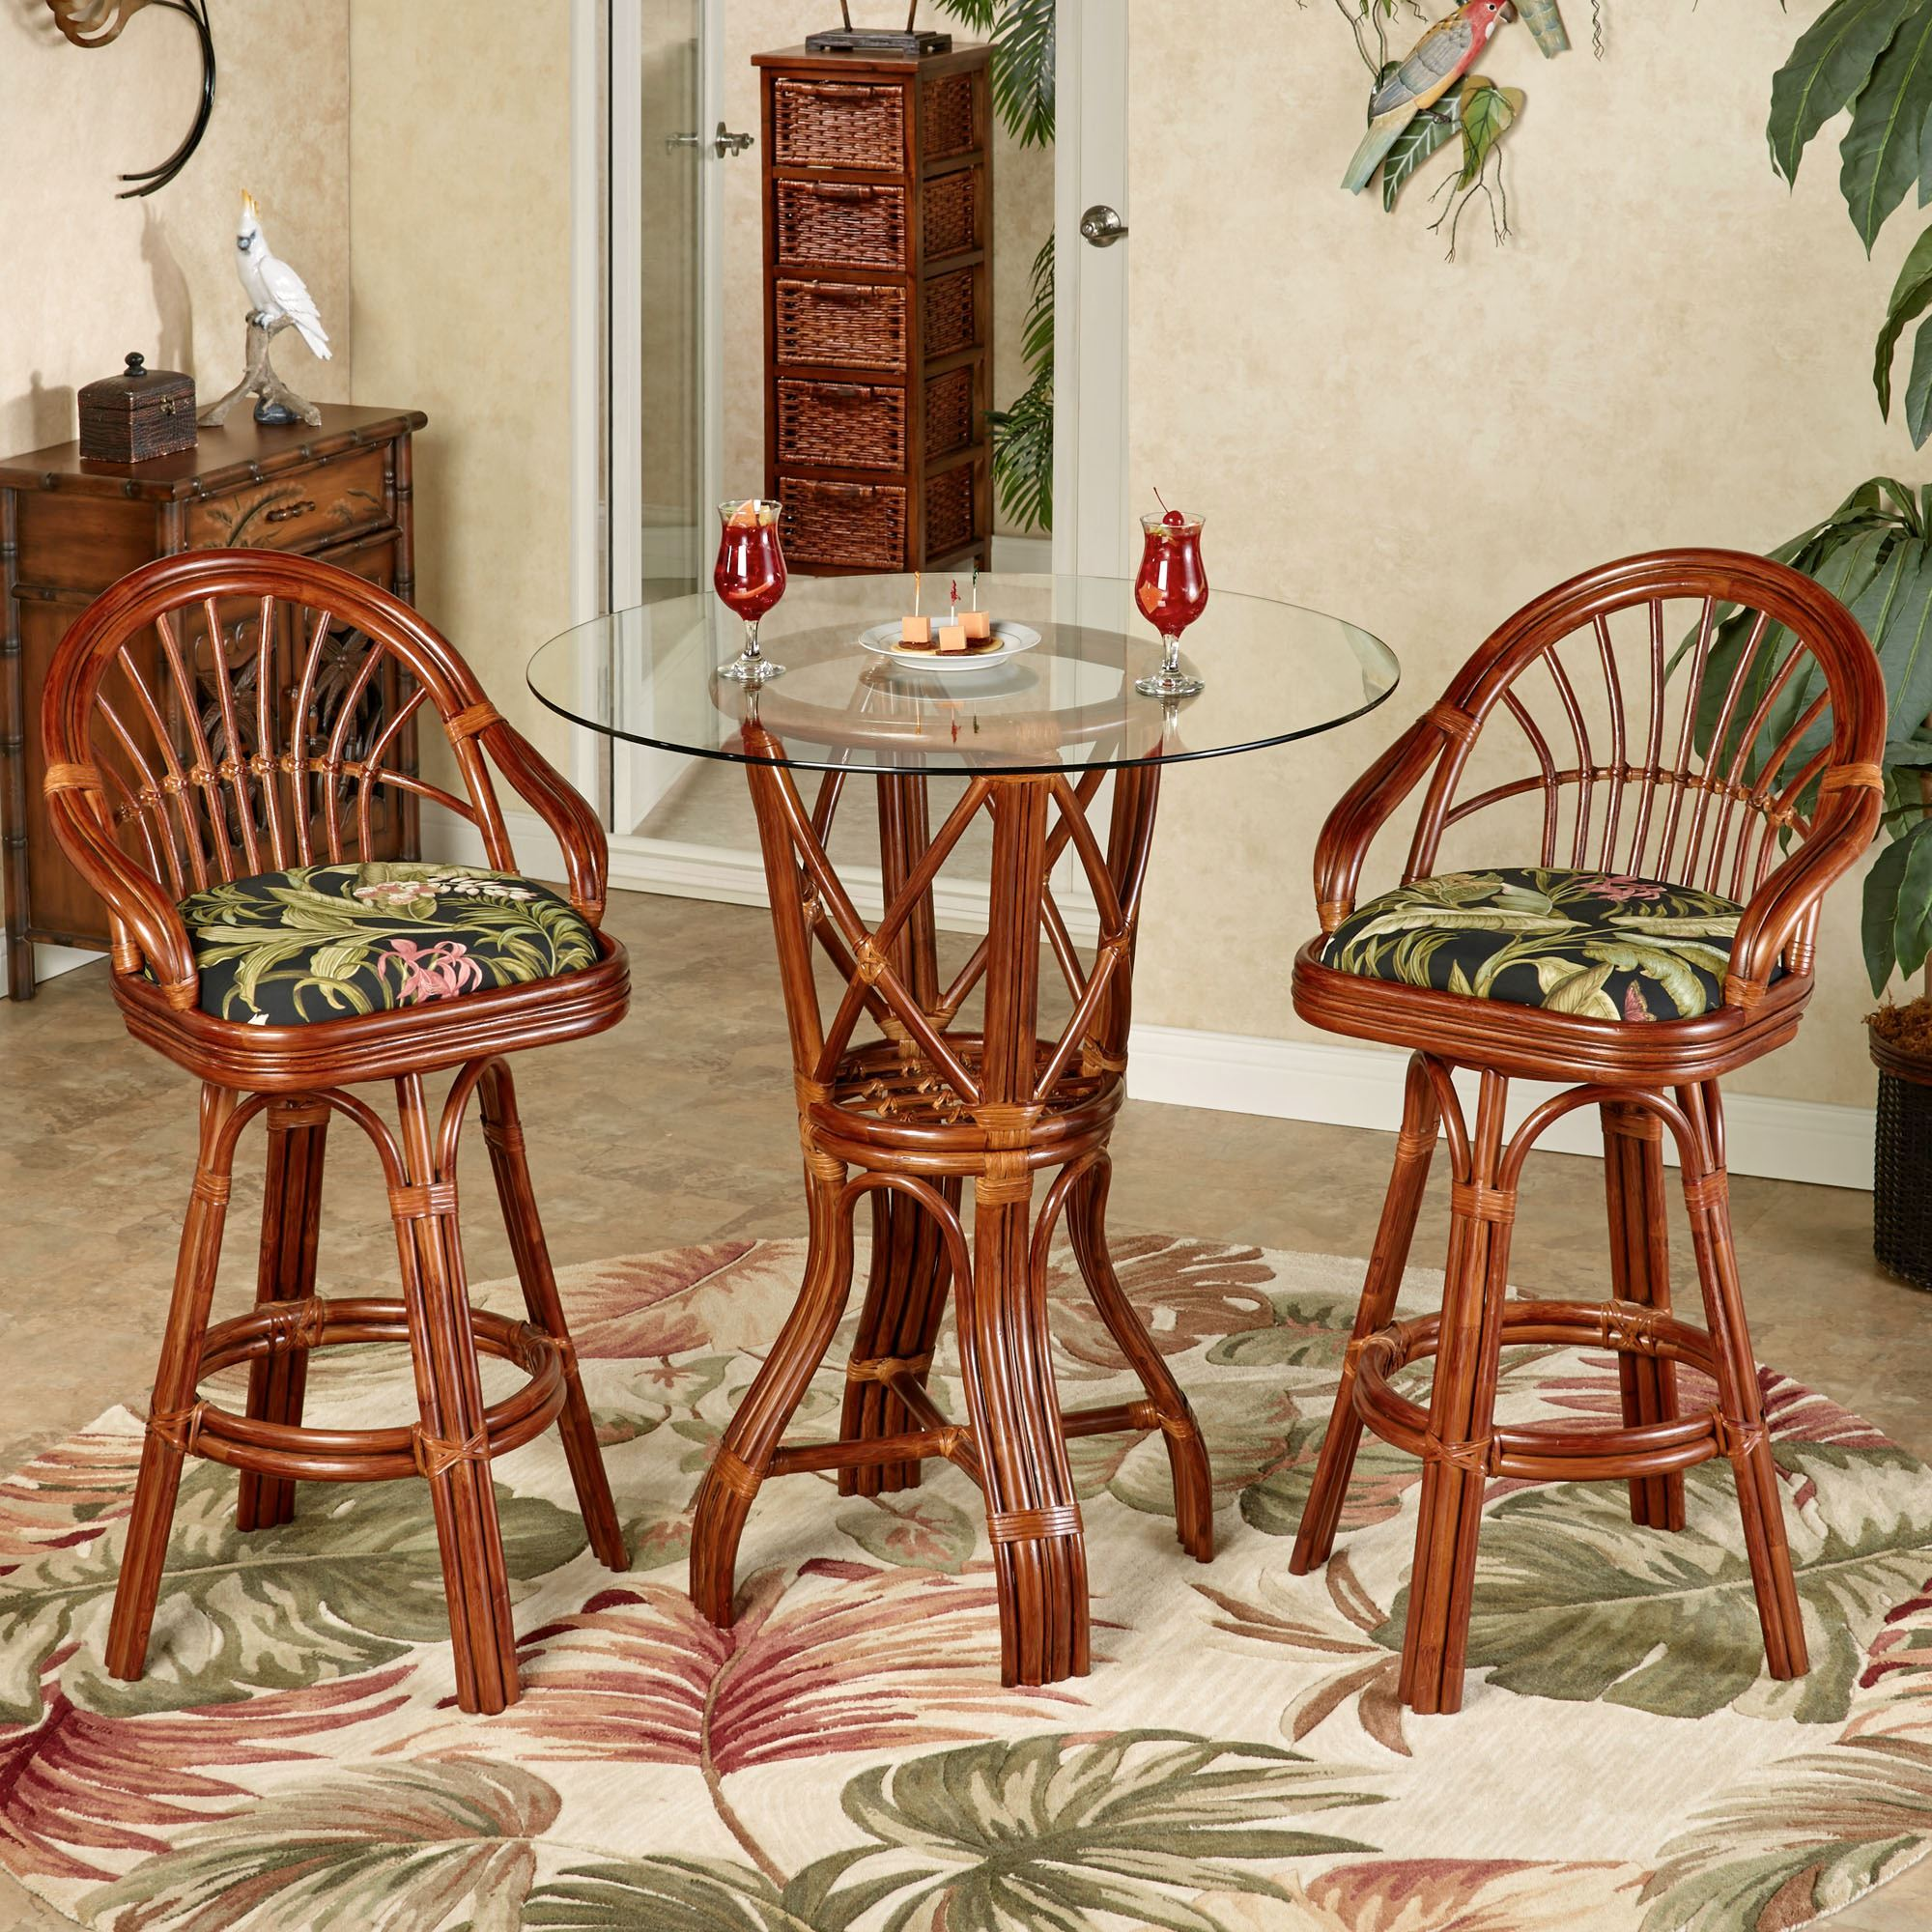 Leikela Bar Table with Two Stools Wailea Coast Set of Three : stools and table sets - pezcame.com